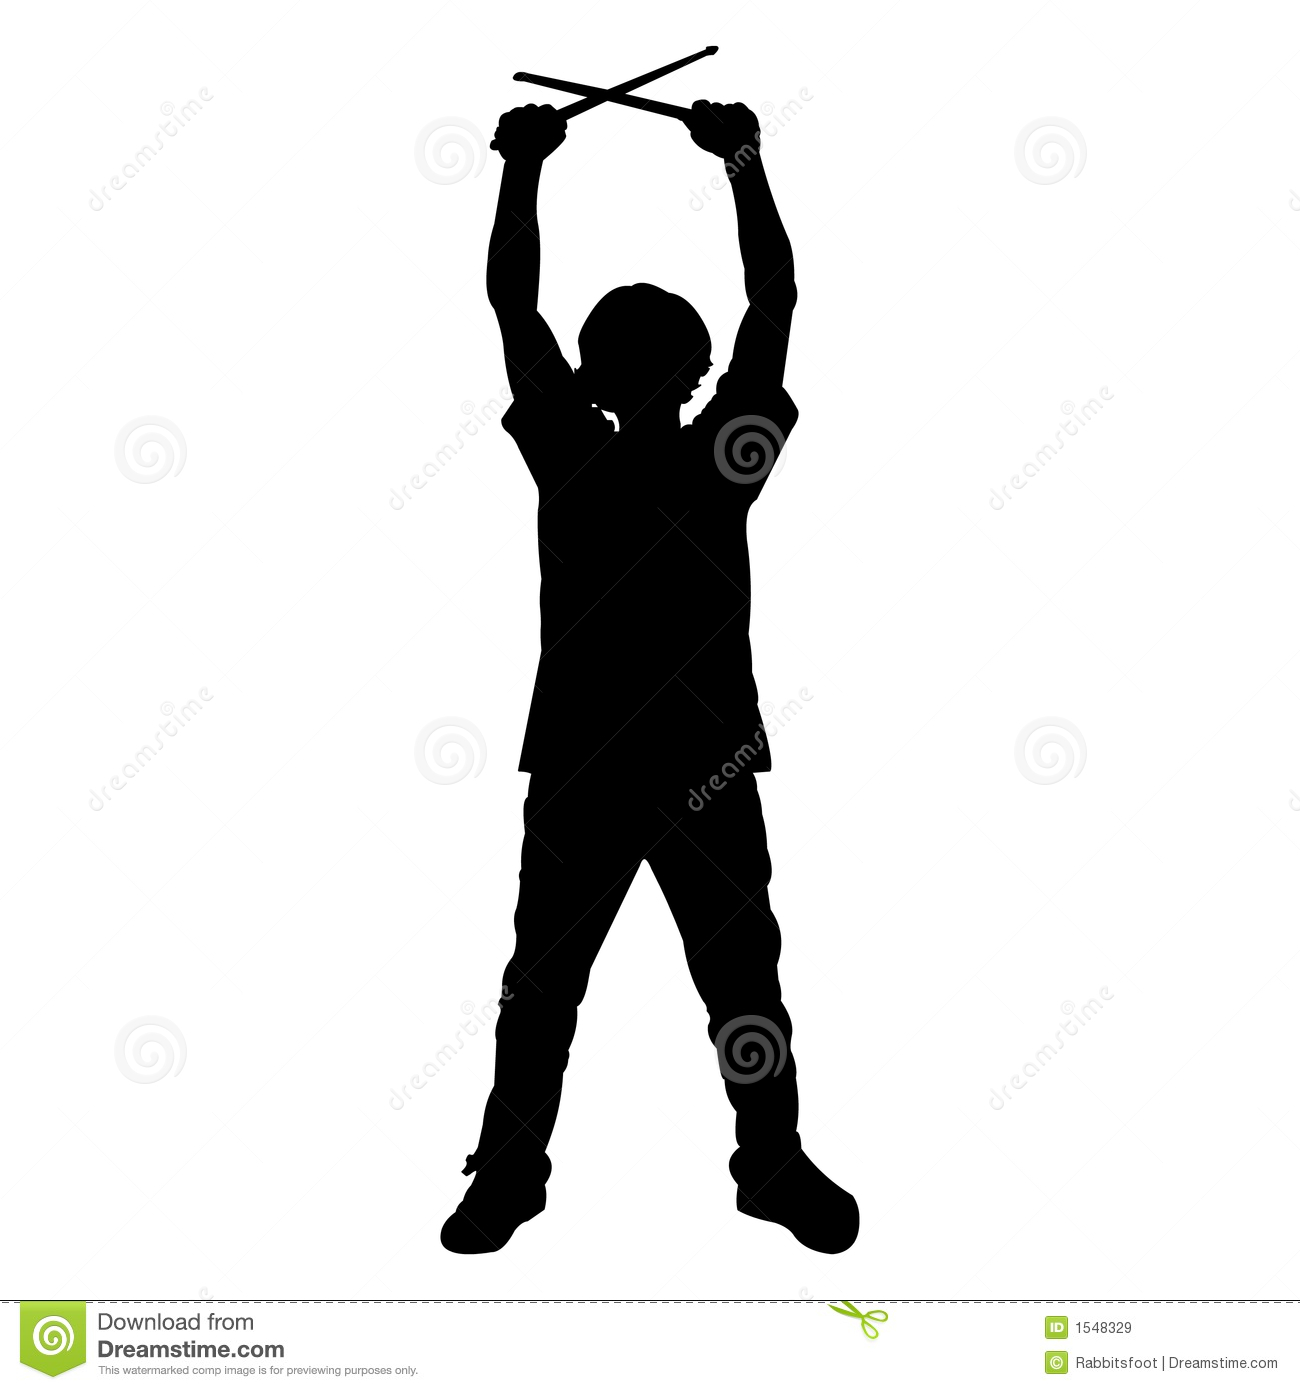 Teen Drummer - Silhouette Royalty Free Stock Images - Image: 1548329